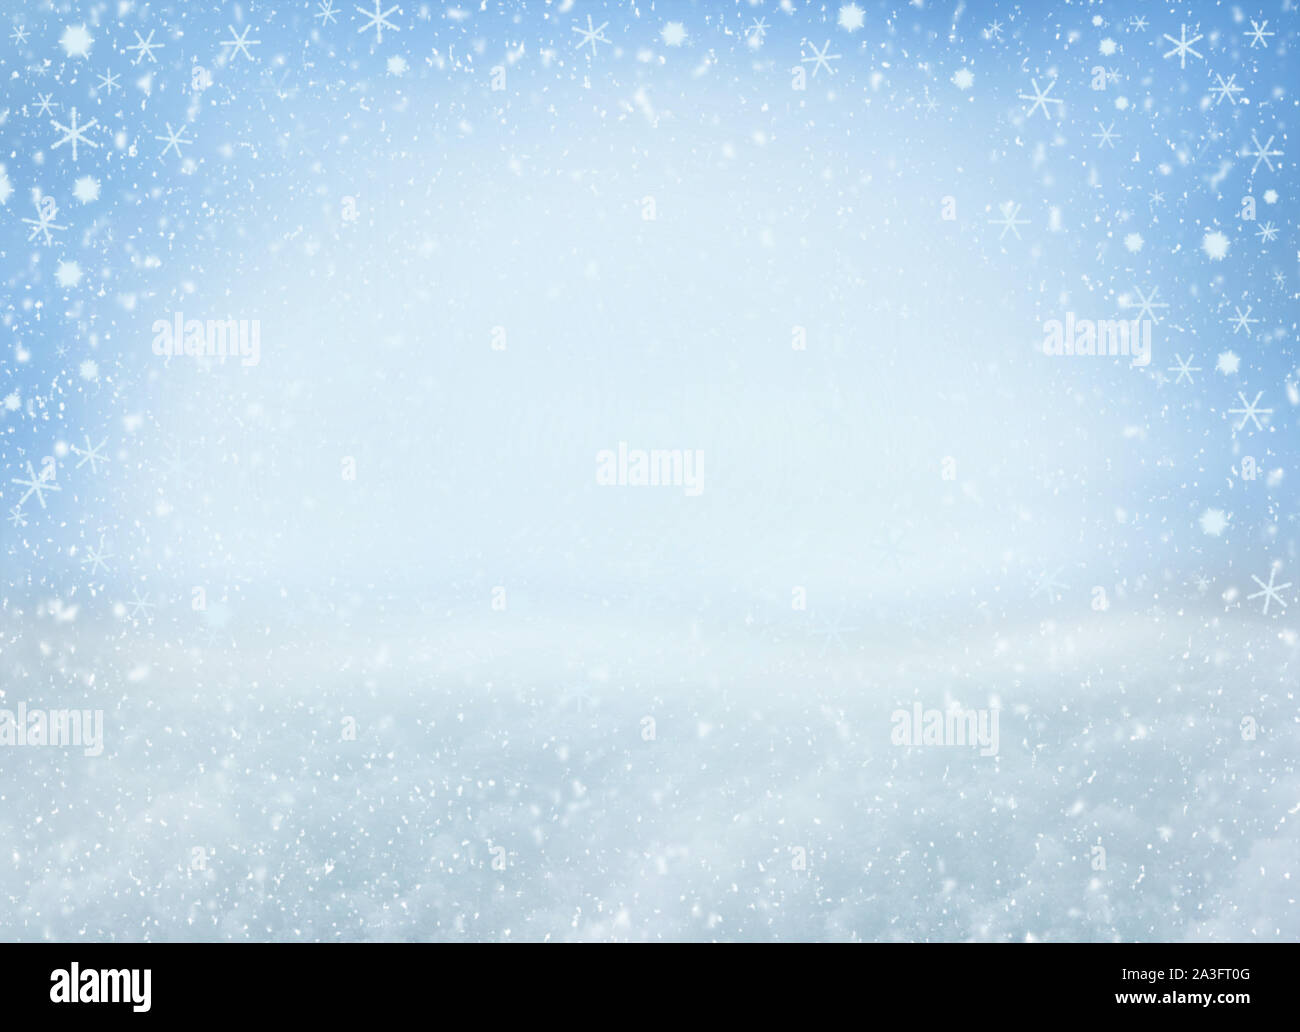 Winter Christmas background with falling snowflakes. Background for design with copy space Stock Photo